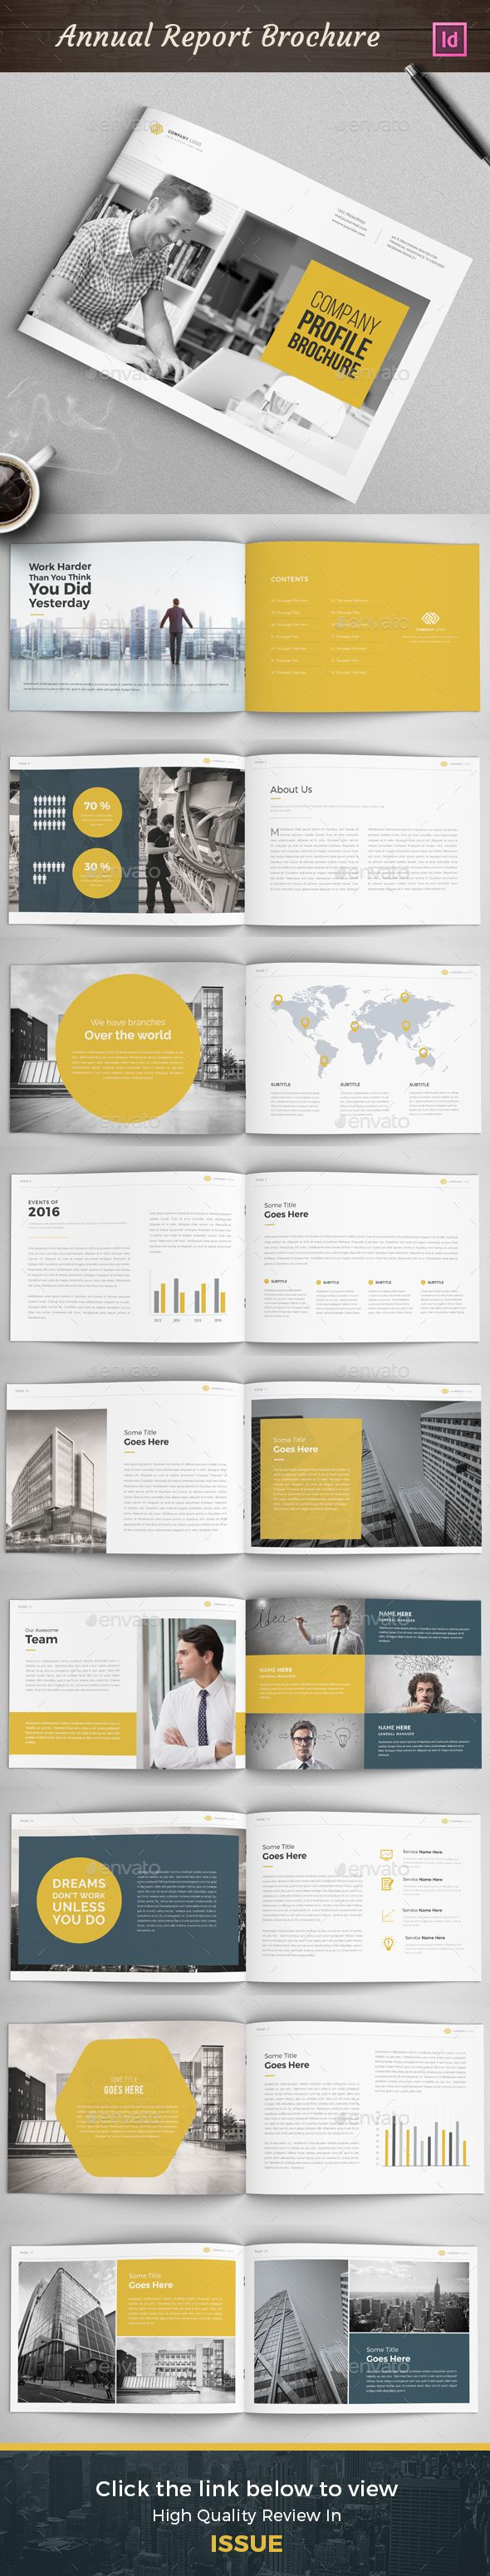 176 Best Brochure Templates Images On Pinterest Brochure Template